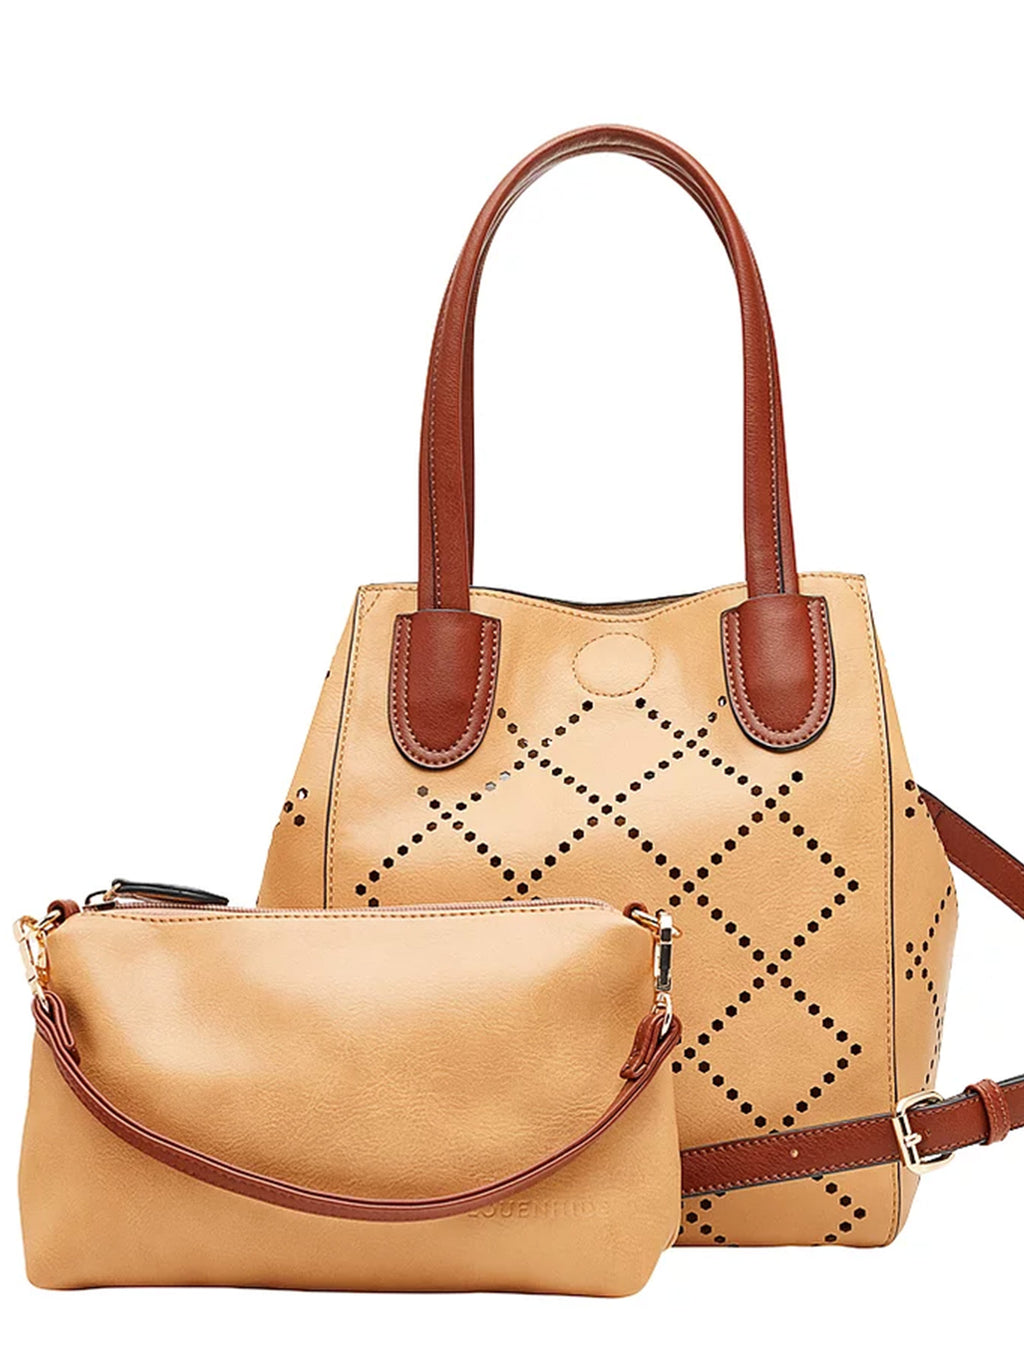 Baby Bermuda | Camel - Handbags - Queen & Grace